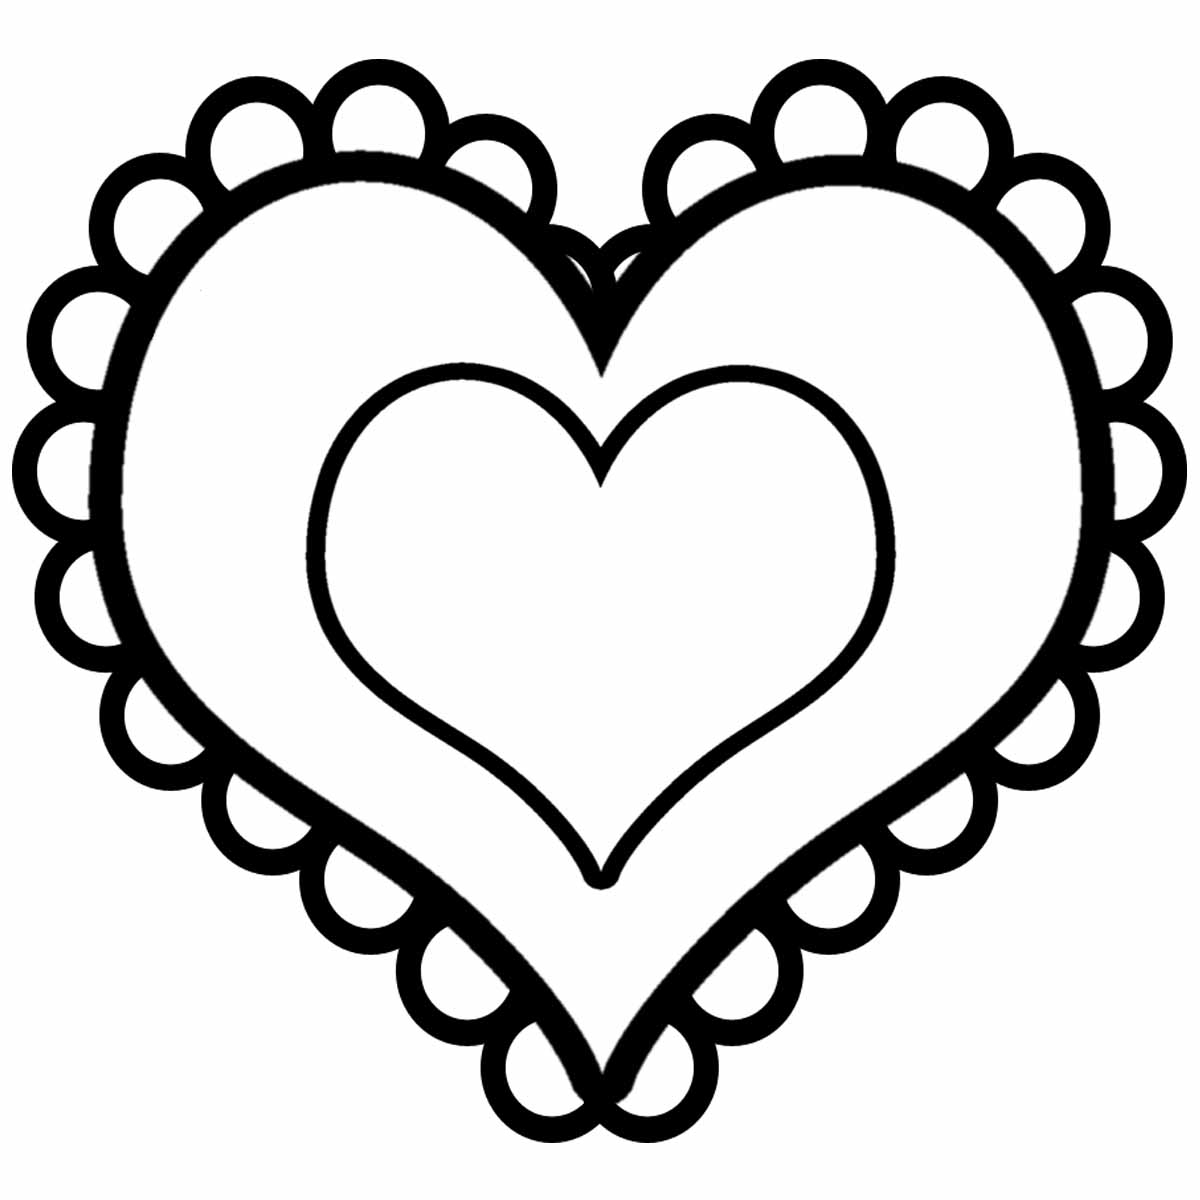 hearts coloring page free printable heart coloring pages for kids coloring page hearts